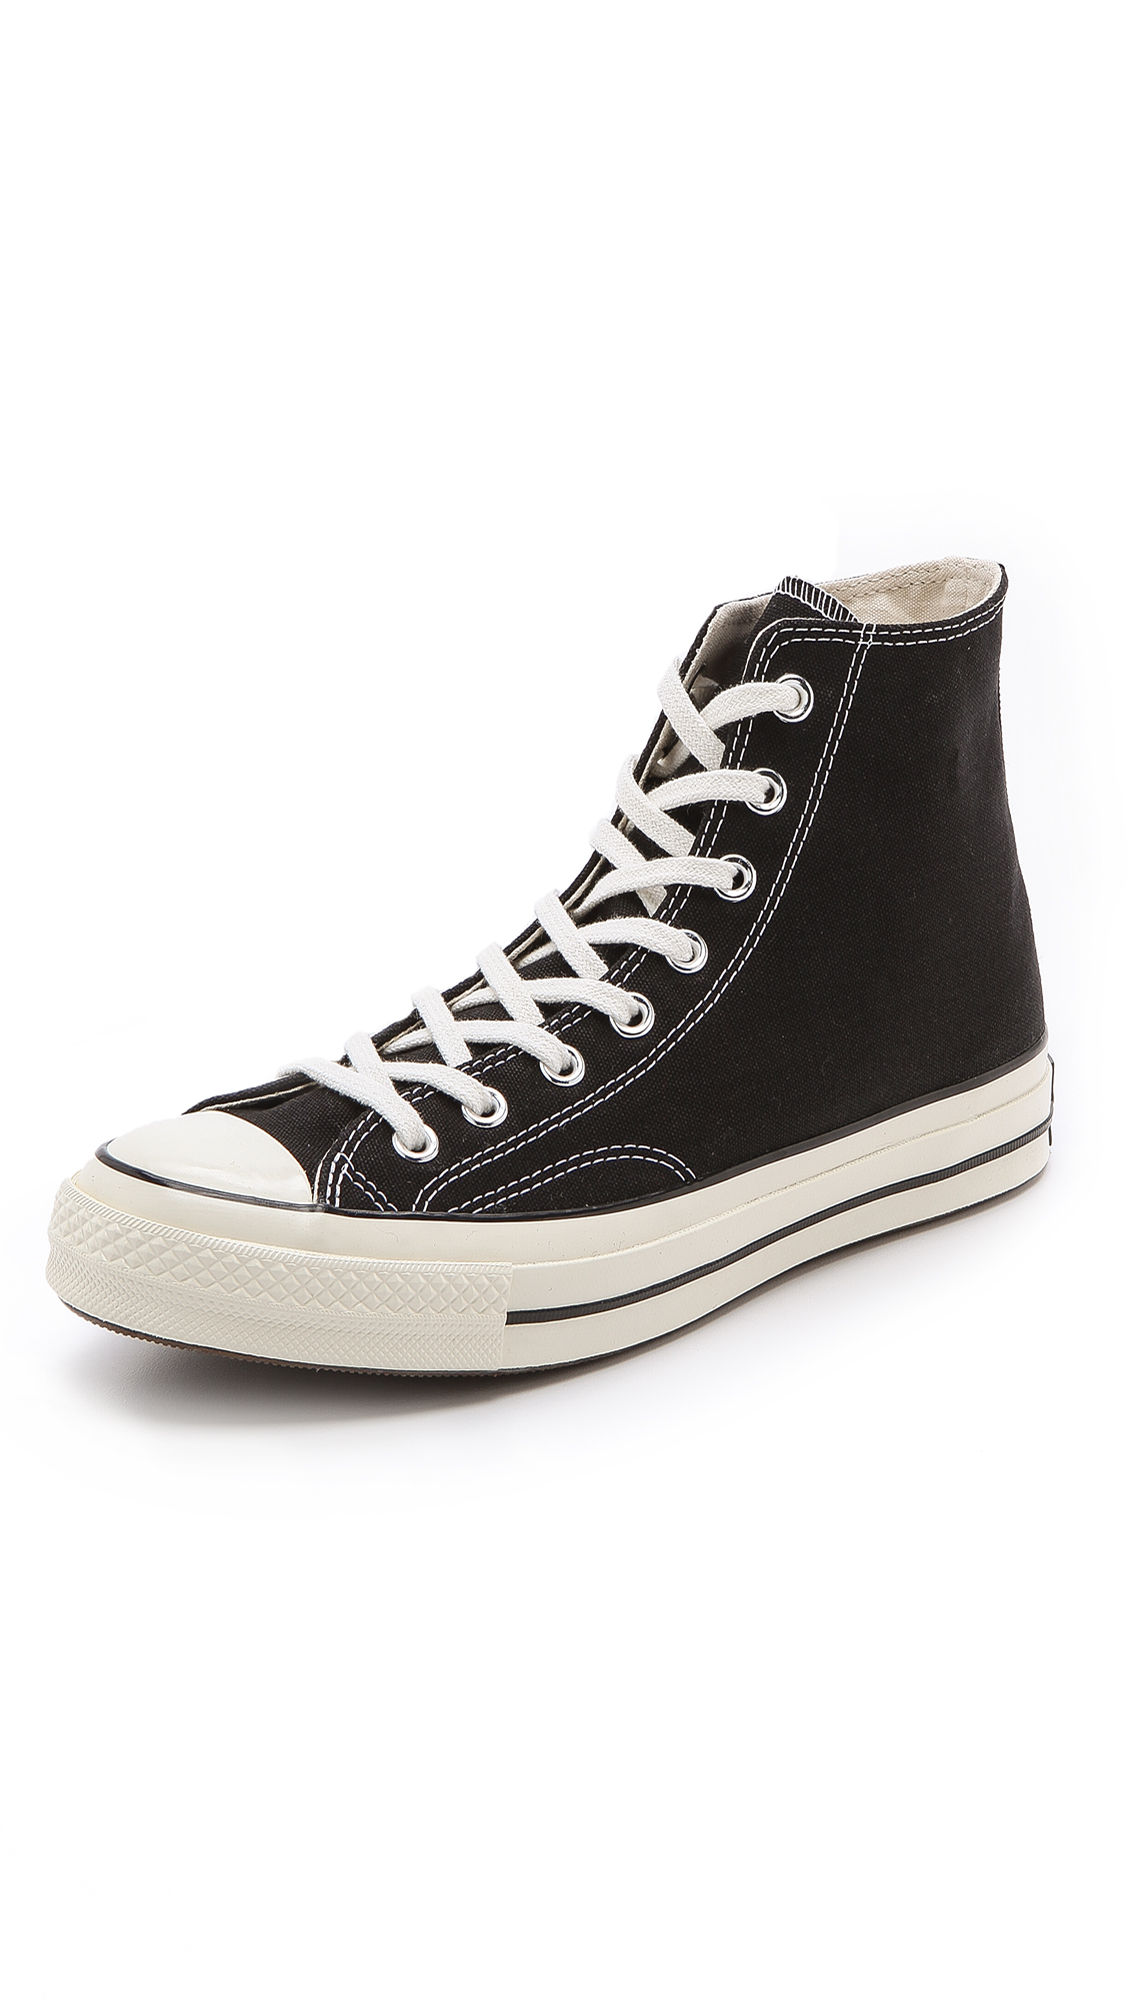 Converse Chuck Taylor All Star  70s High Top Sneakers  acdca3153